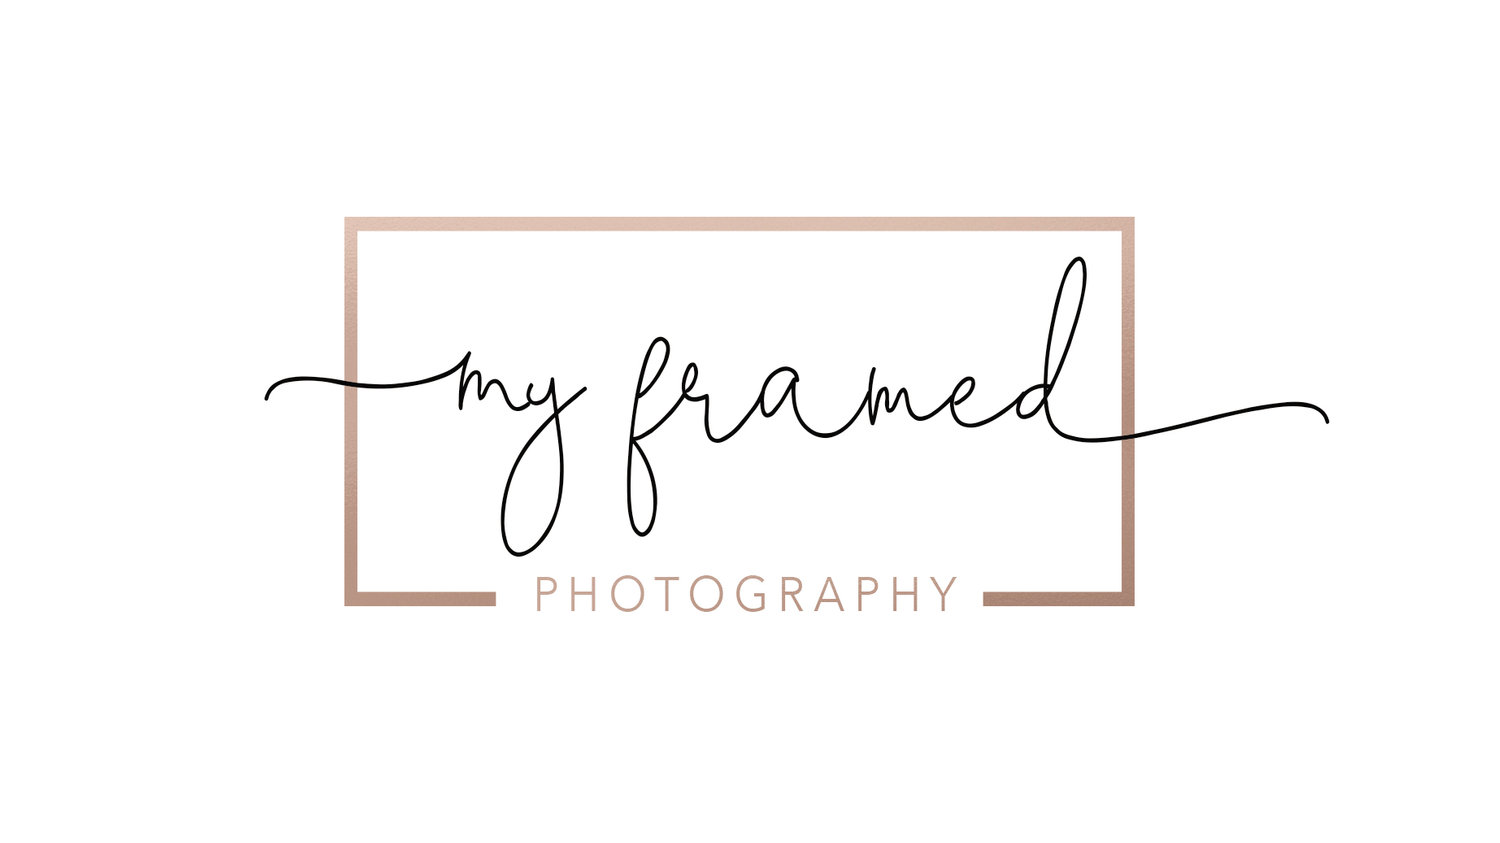 Photography in St George Utah: My Framed Photography logo